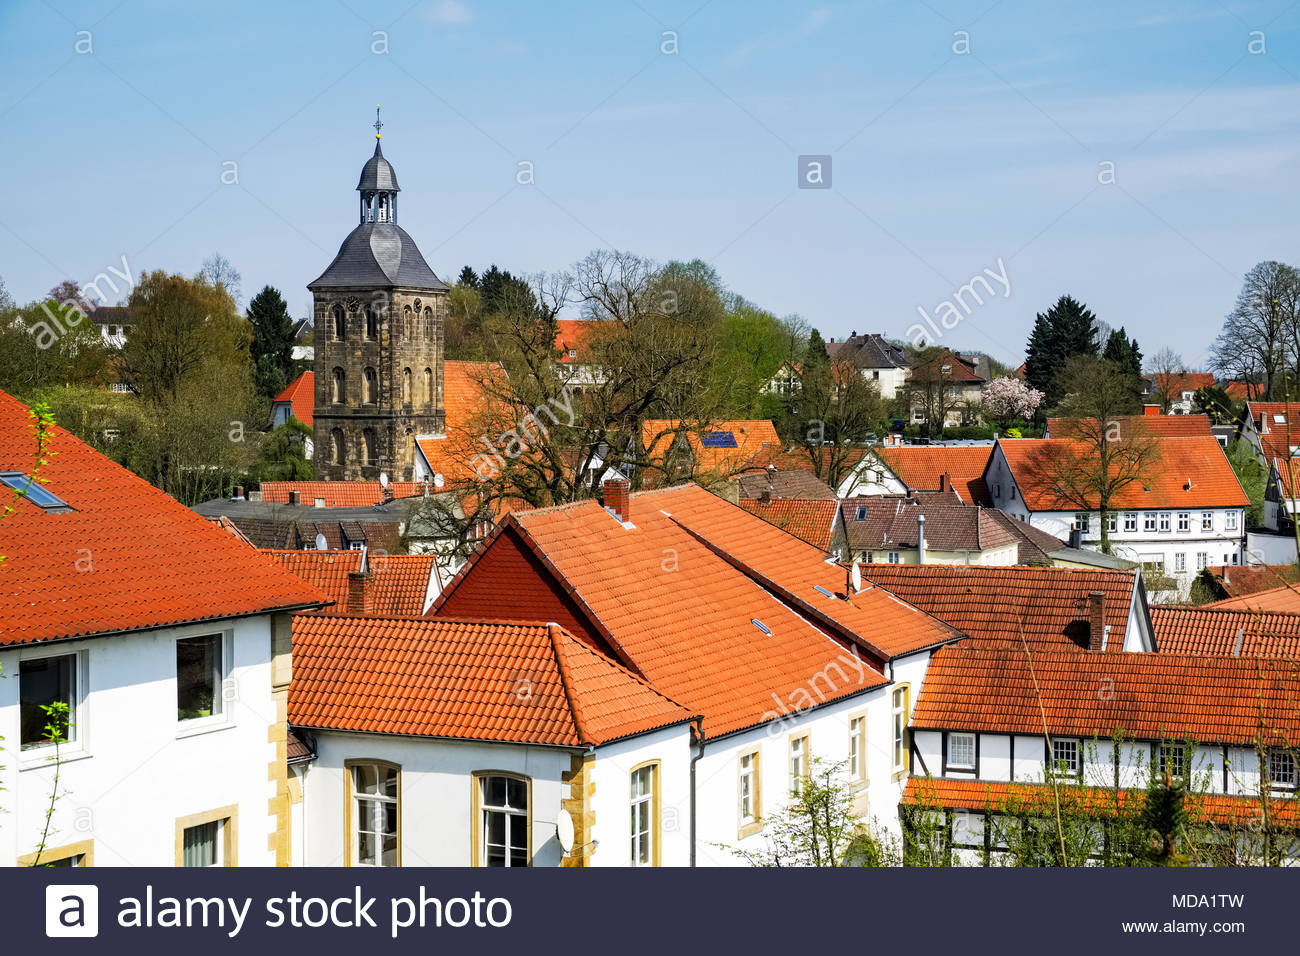 Die evangelisch Stadtkirche — the Protestant town church — of Tecklenburg with its surrounding neighborhood of red tile roofs Stock Photo